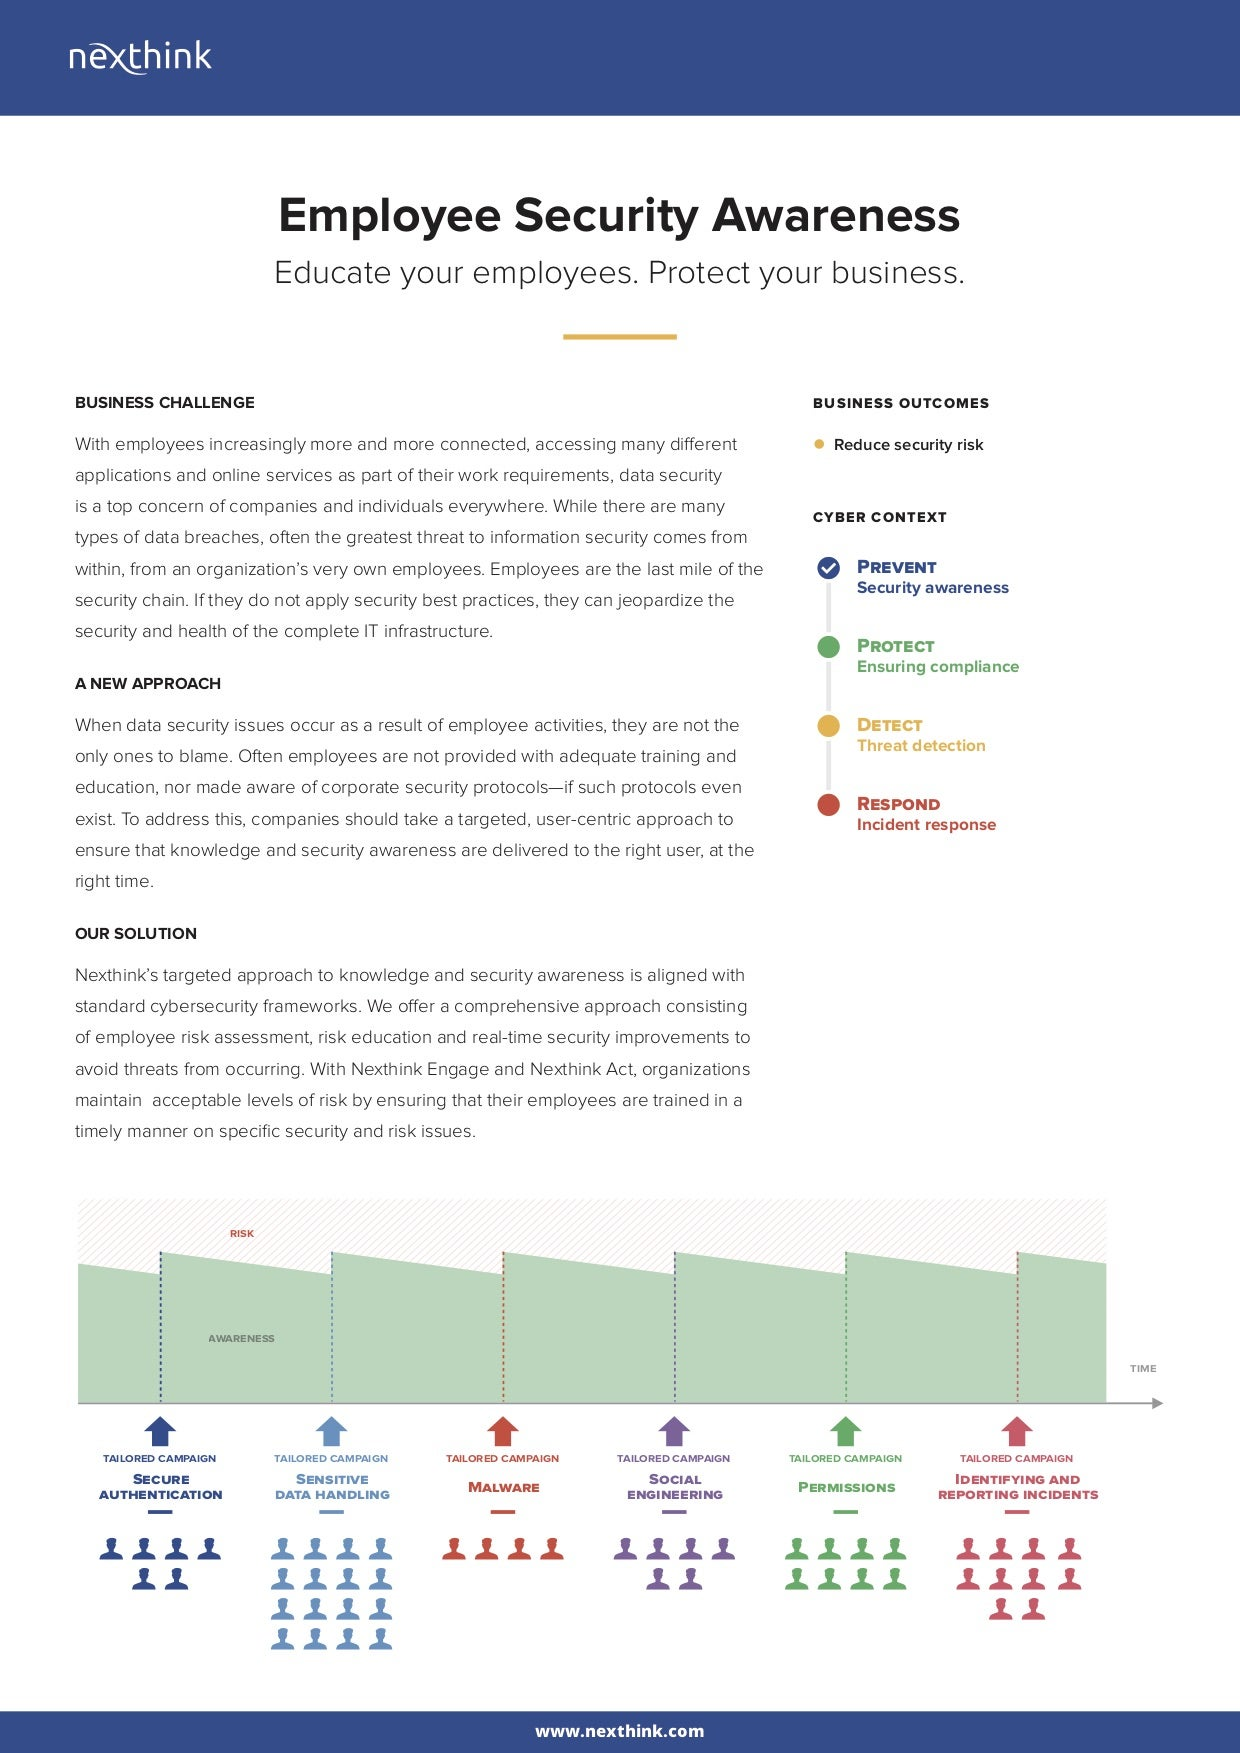 Employee Security Awareness Solution Brief